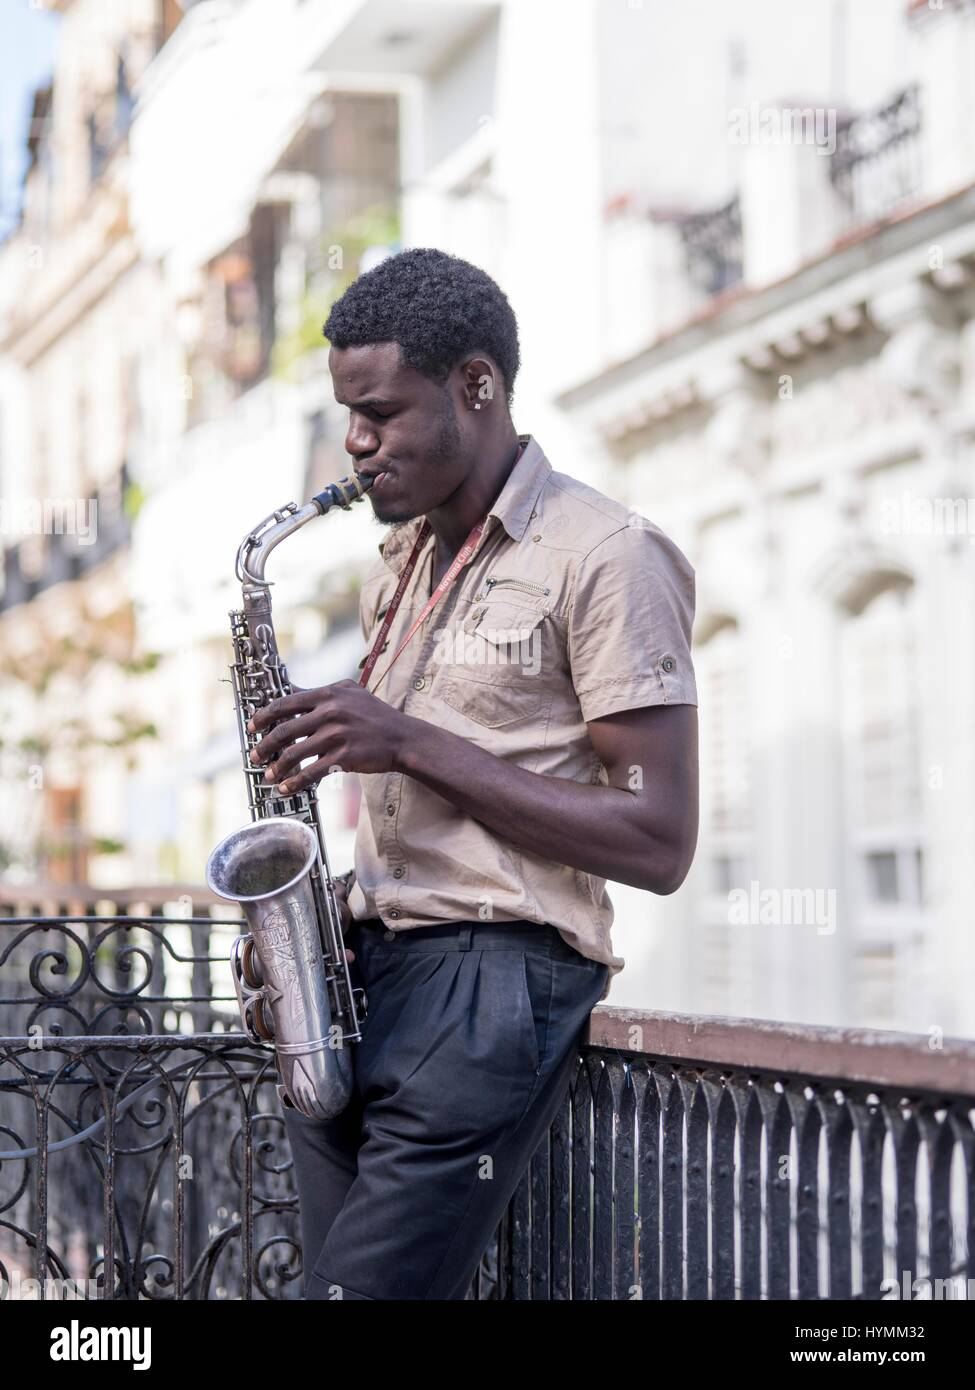 Cuban man playing saxophone in Old Havana, Cuba, West Indies, Central America - Stock Image